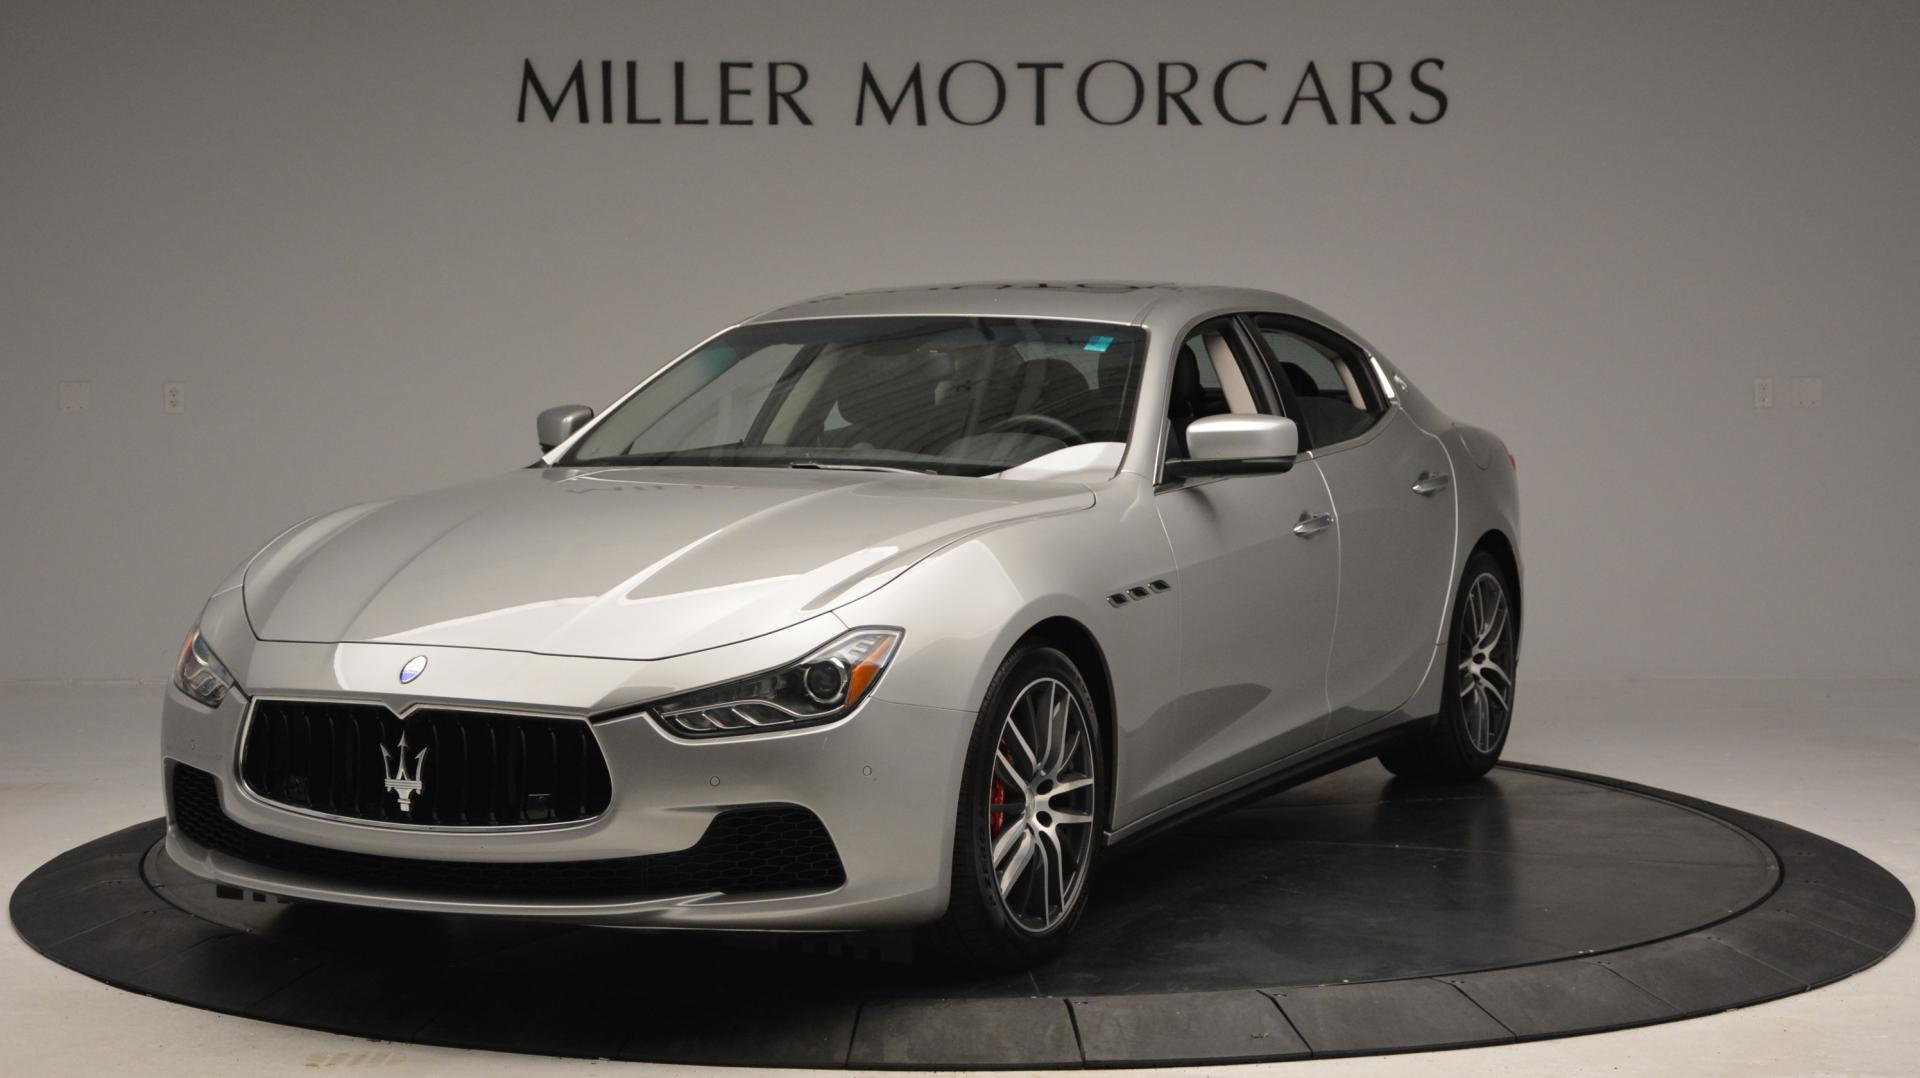 New 2016 Maserati Ghibli S Q4 for sale Sold at Alfa Romeo of Westport in Westport CT 06880 1